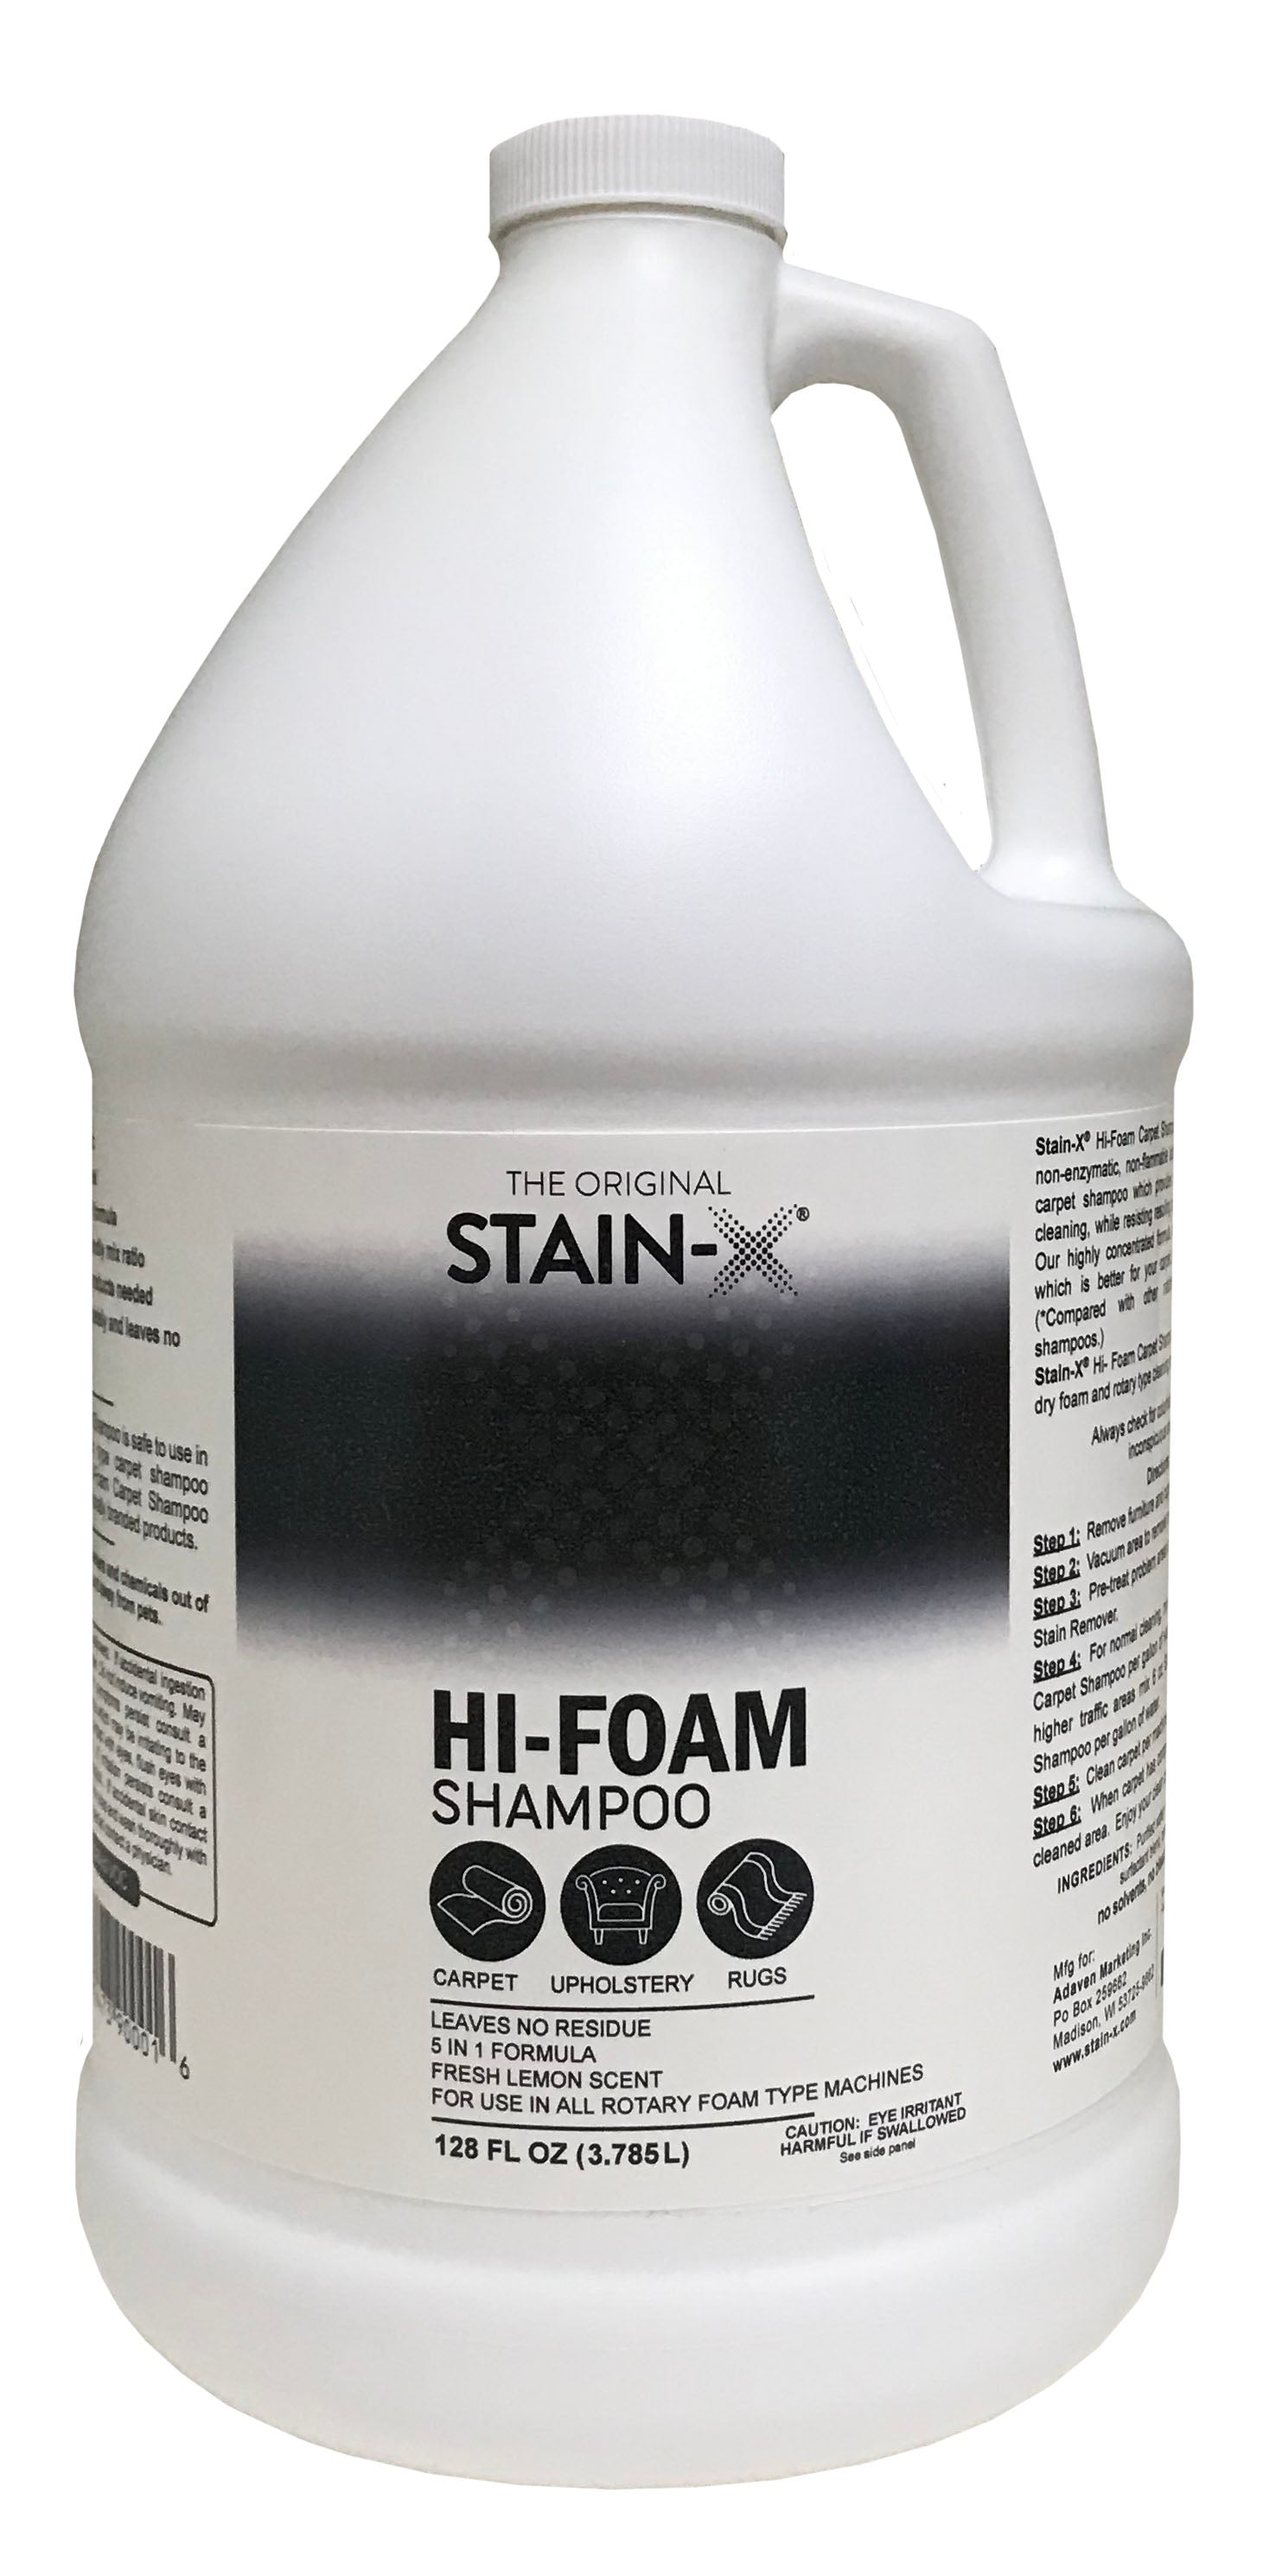 Stain-X Hi-Foam Carpet Shampoo Gallon